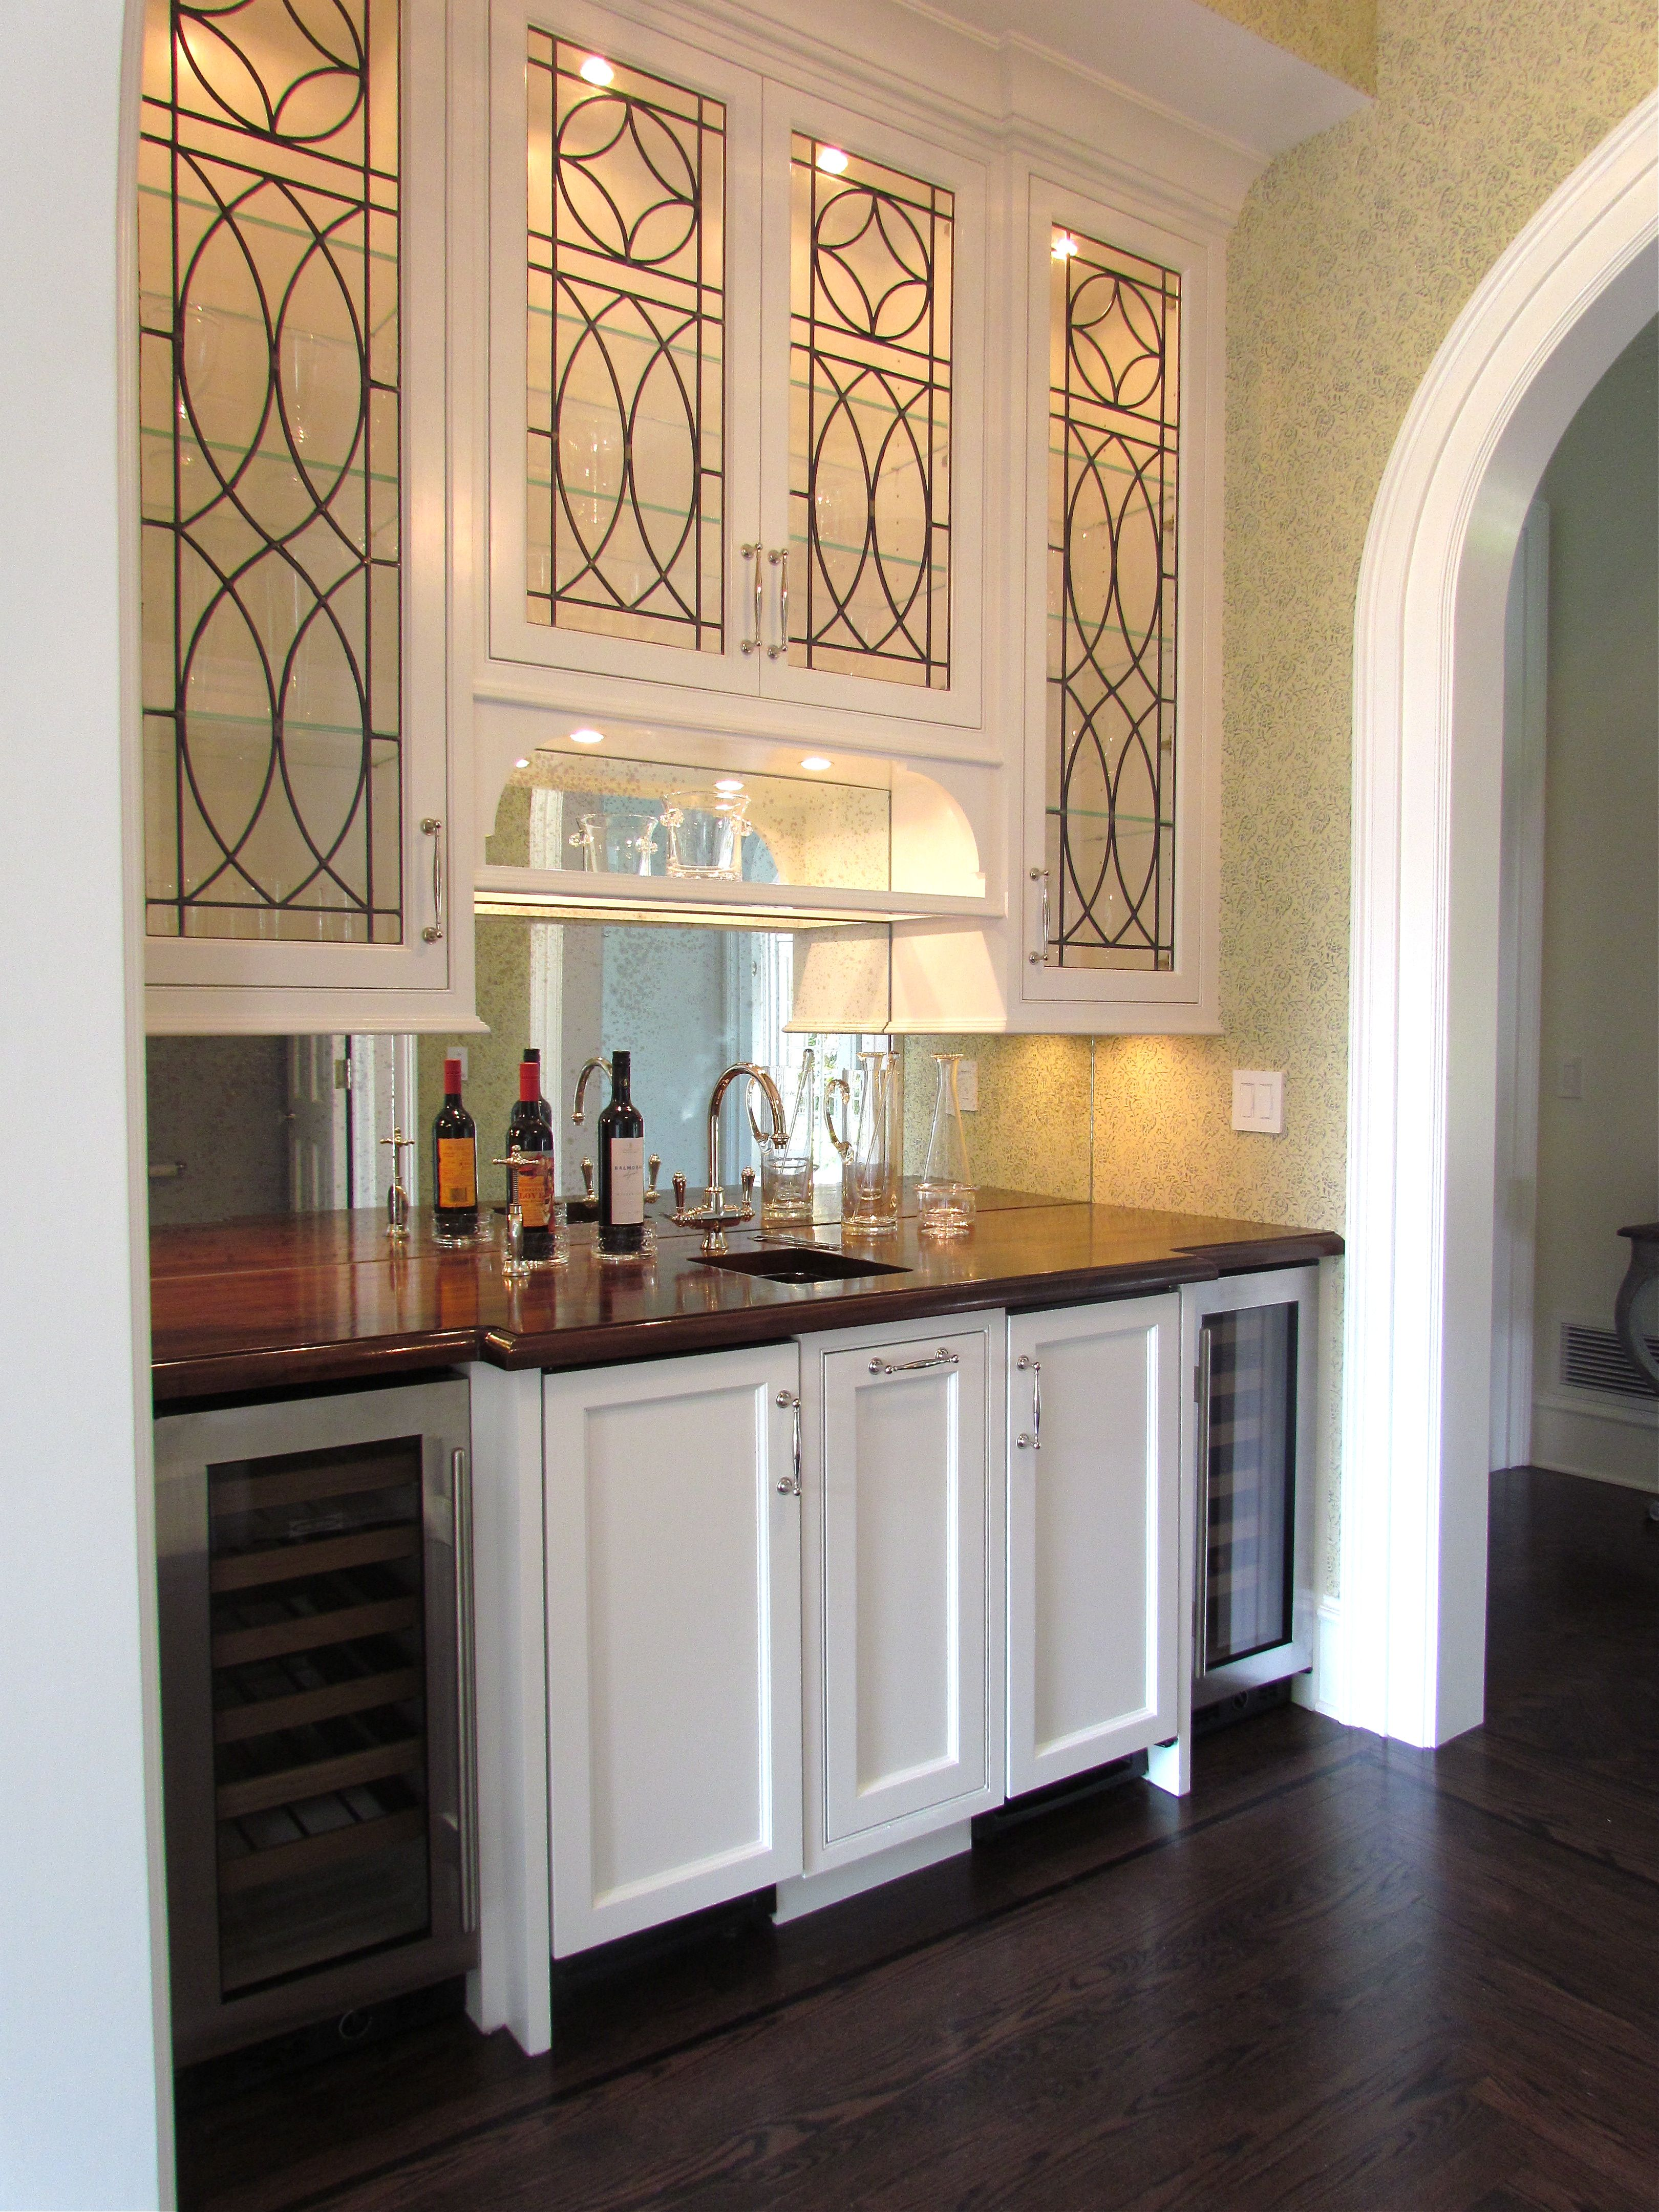 - Wet Bar With Mirrored Backsplash And Leaded Glass Upper Cabinets